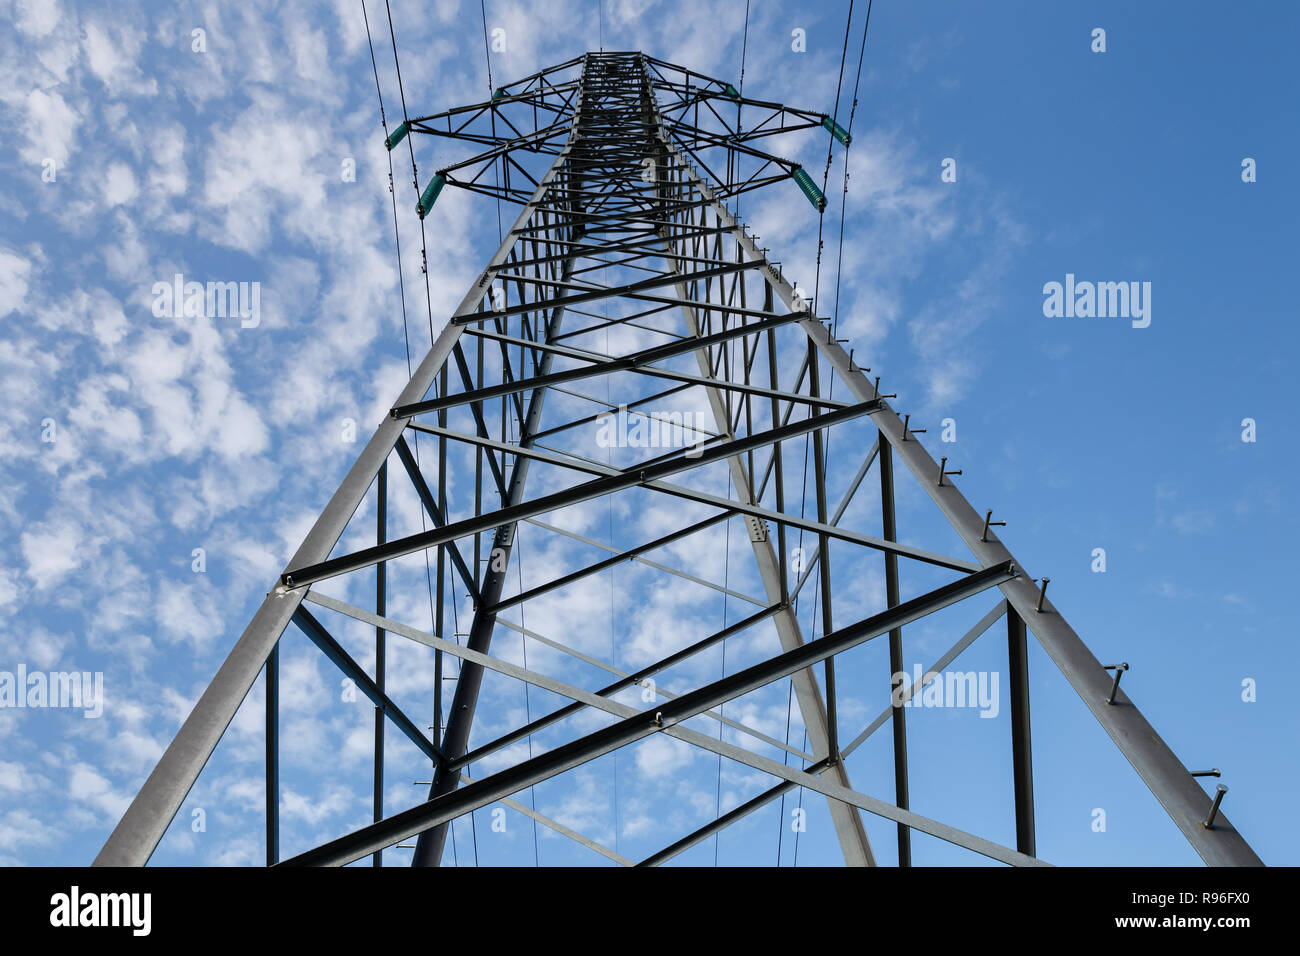 high voltage power line on metal poles - Stock Image